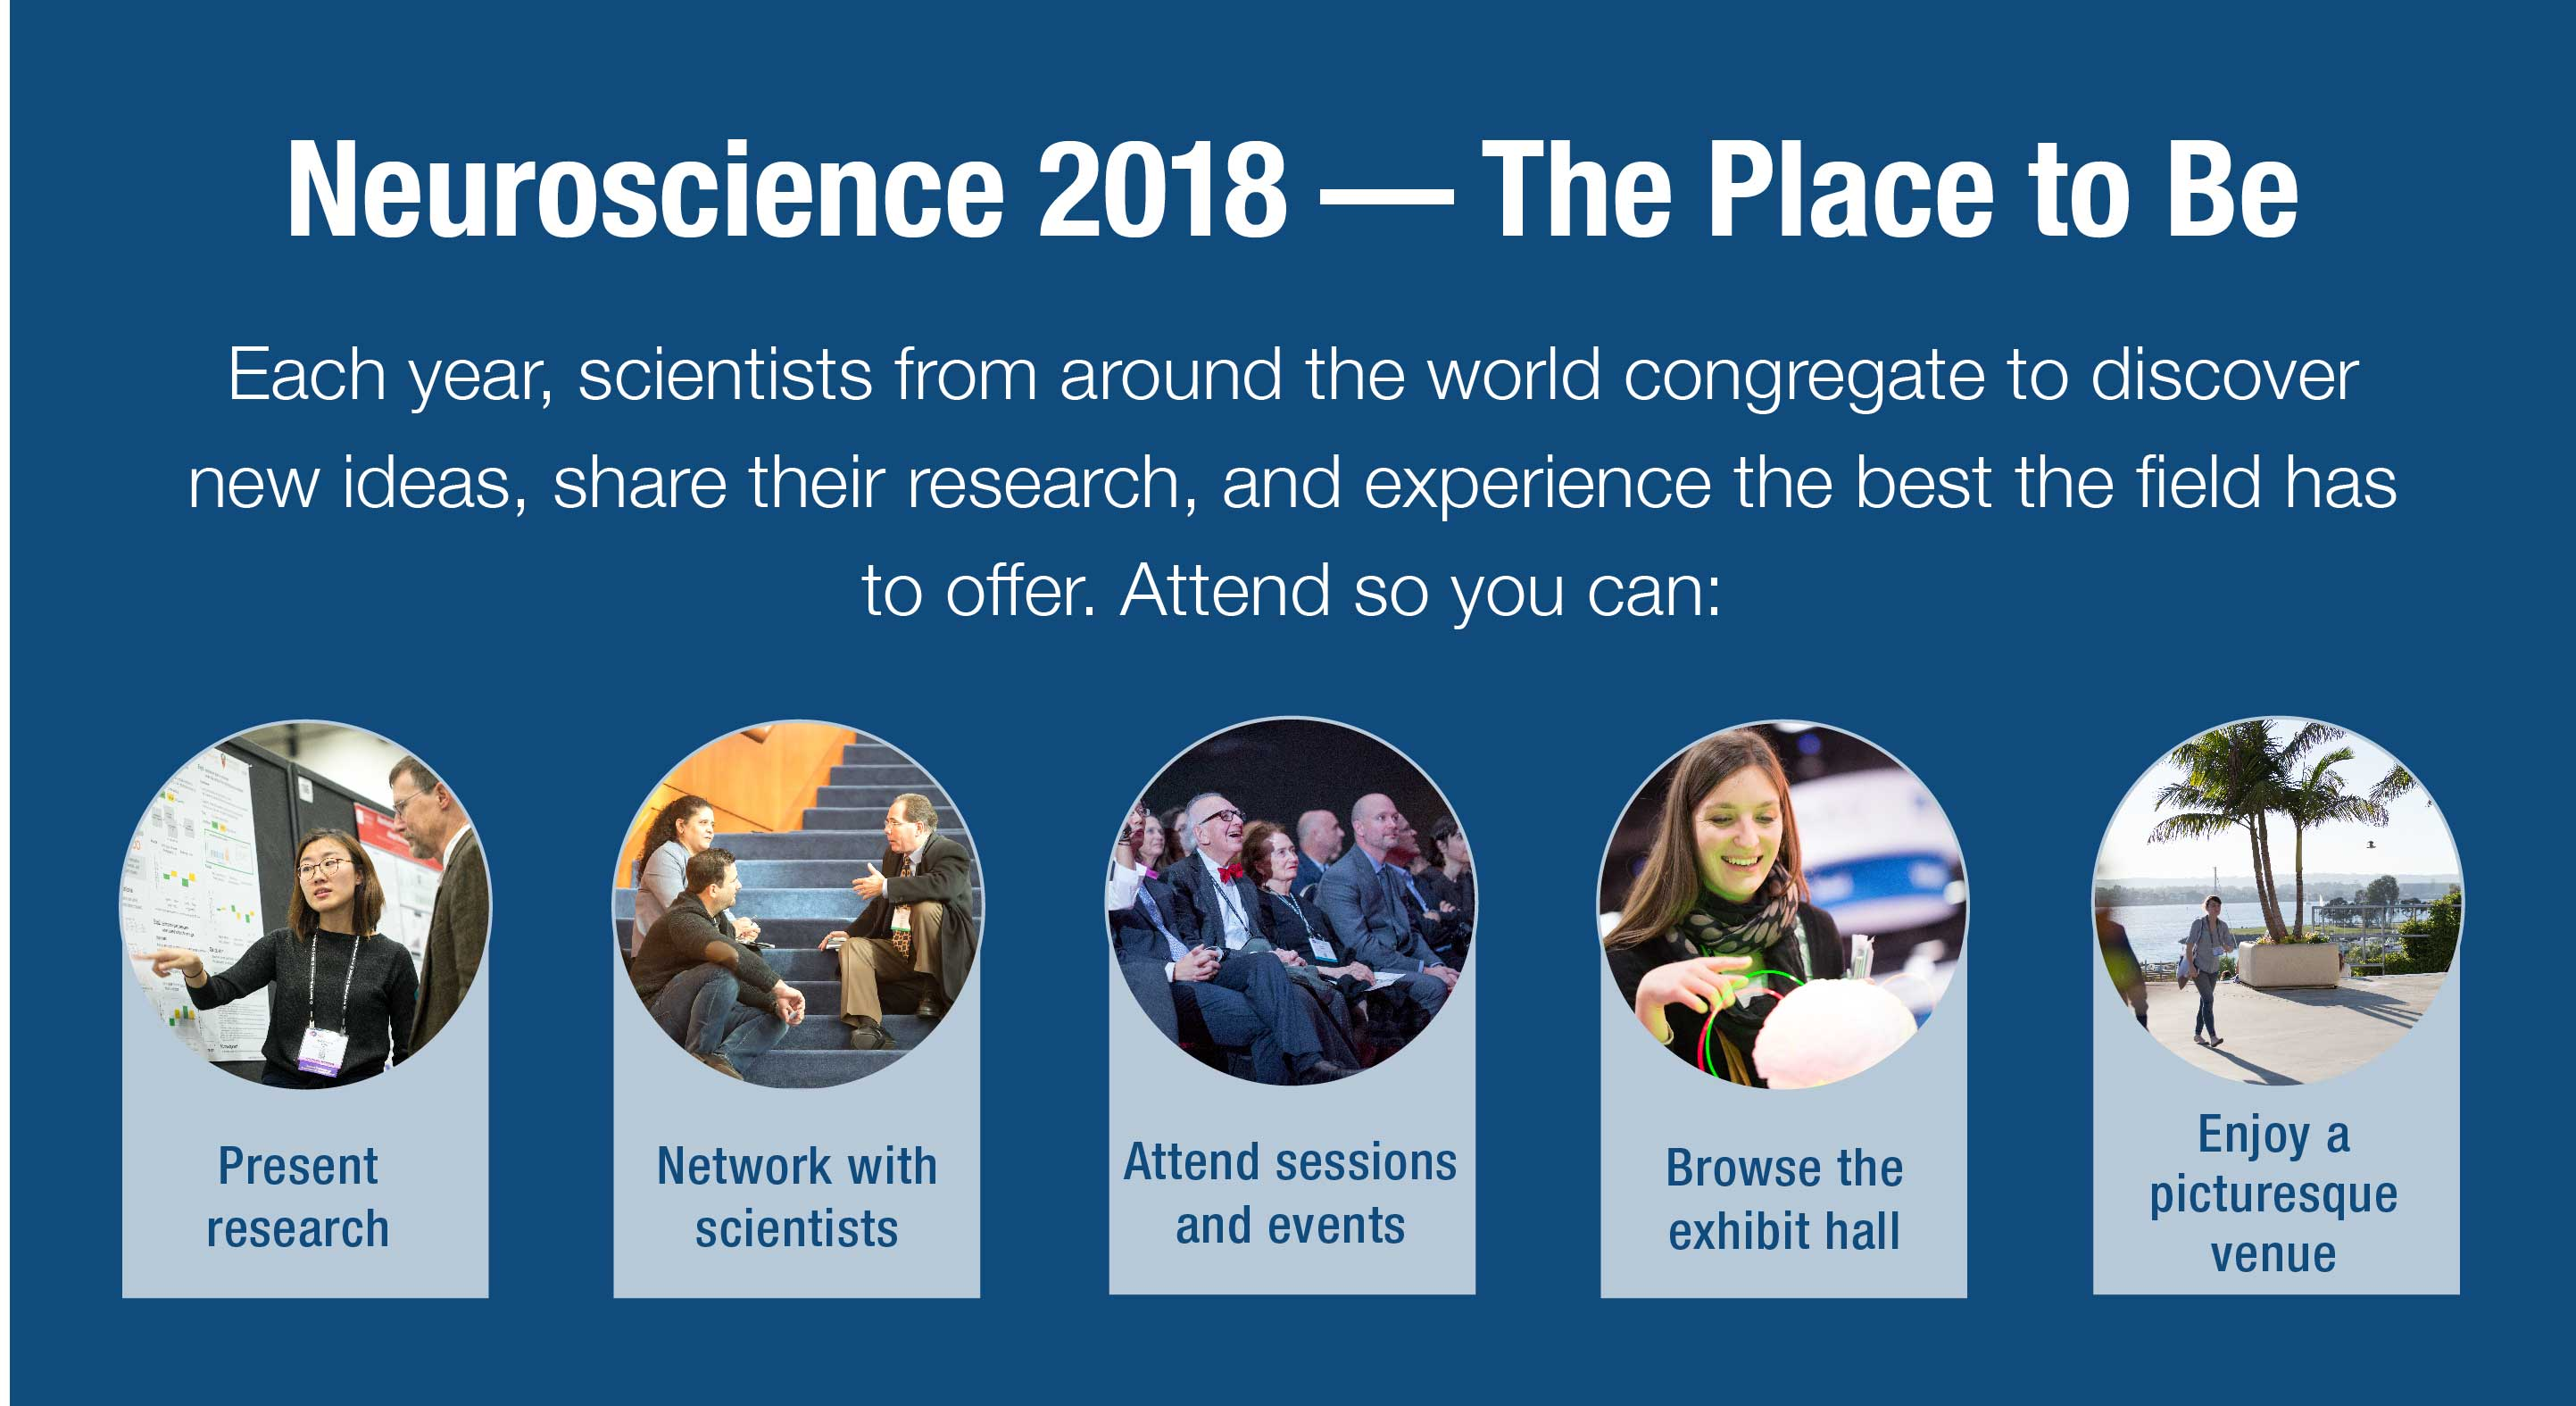 Society for Neuroscience - Neuroscience 2018